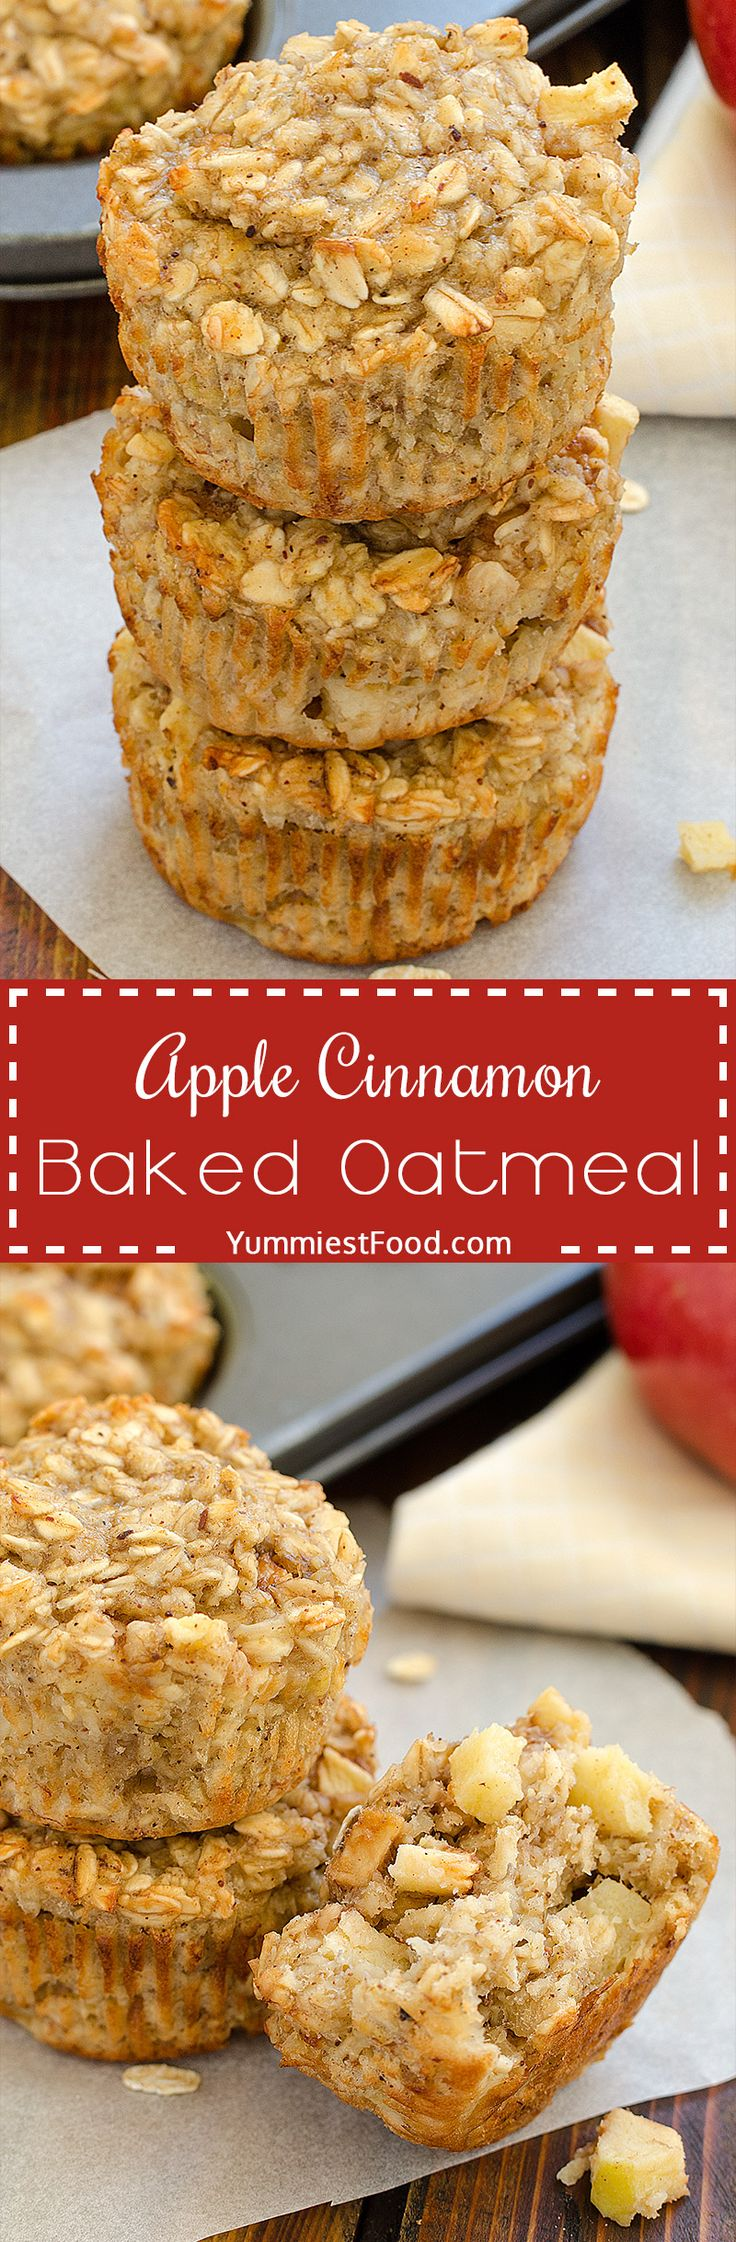 Apple Cinnamon Baked Oatmeal - moist, delicious, healthy, gluten free breakfast, perfect way to start your day! Apple Cinnamon Baked Oatmeal is the best healthy snack you've ever tried!